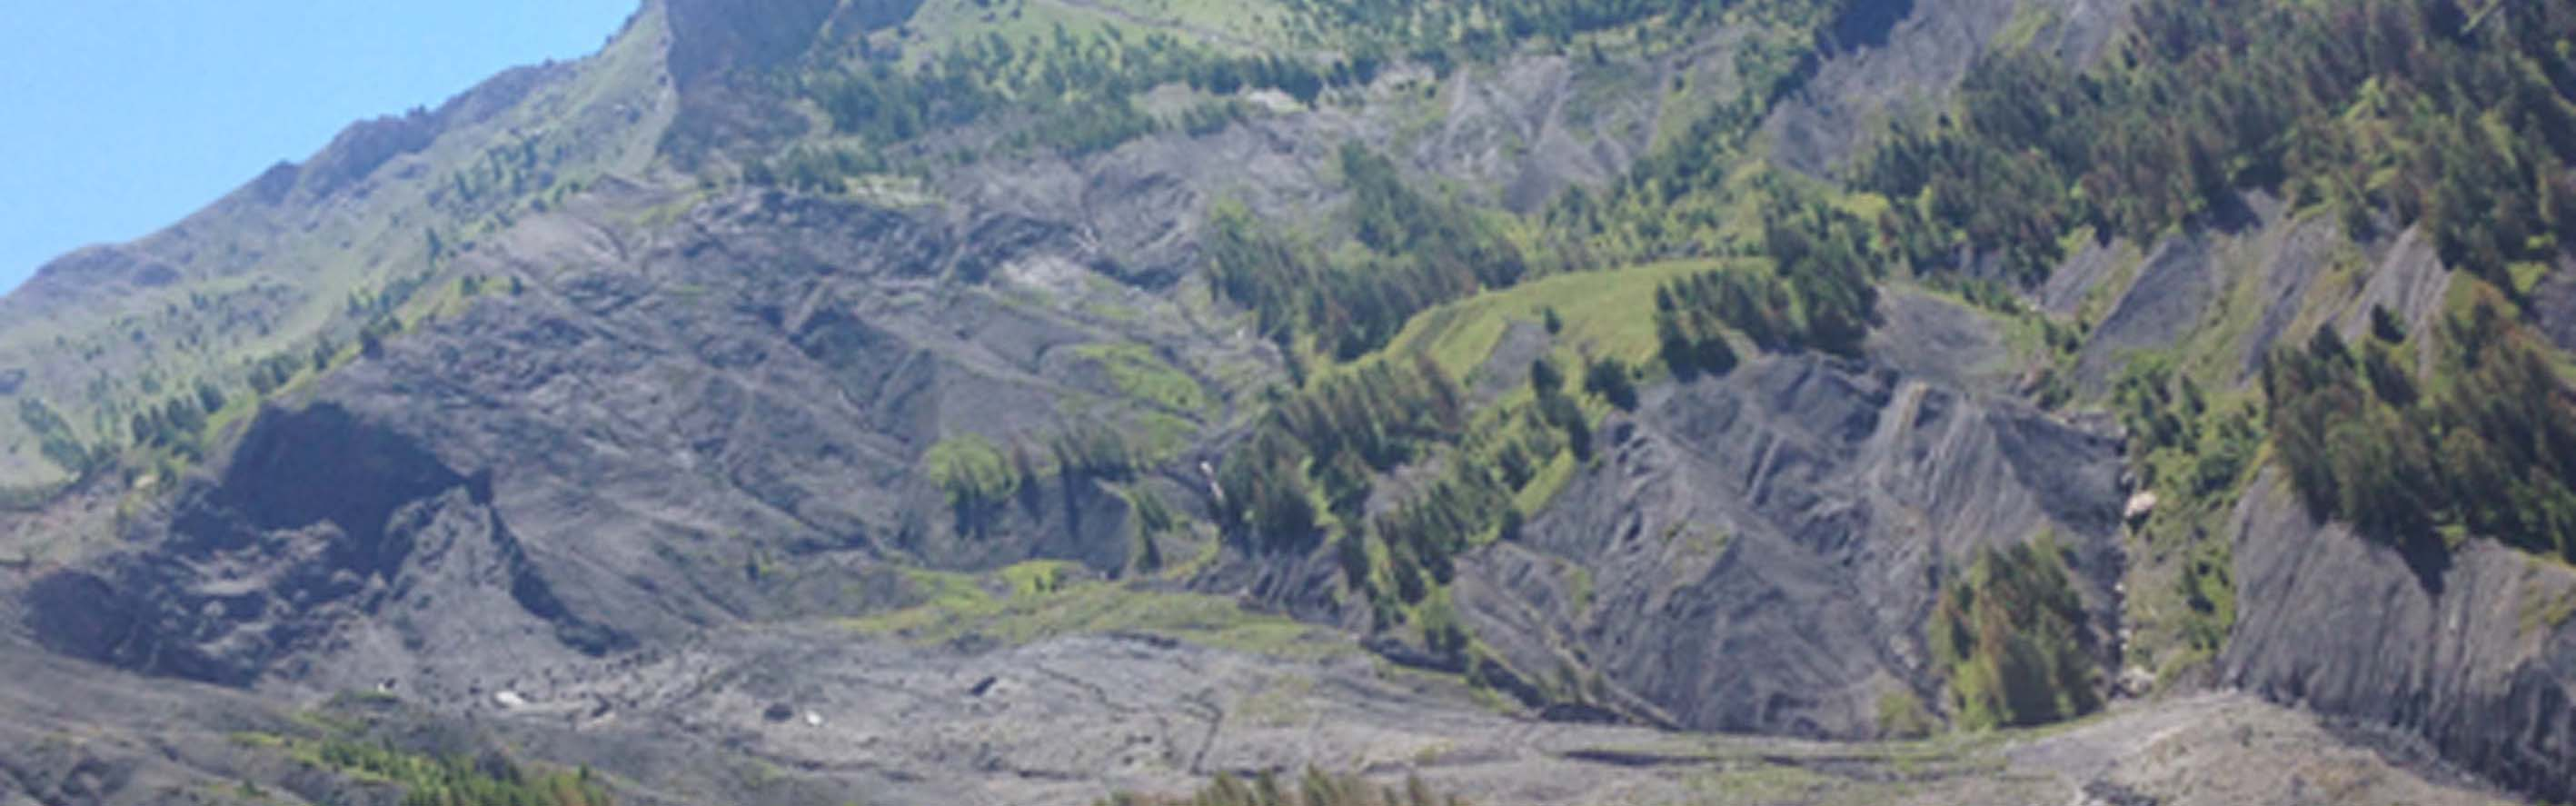 Super-Sauze landslide: view of the landslide and the Sauze catchment in 2016